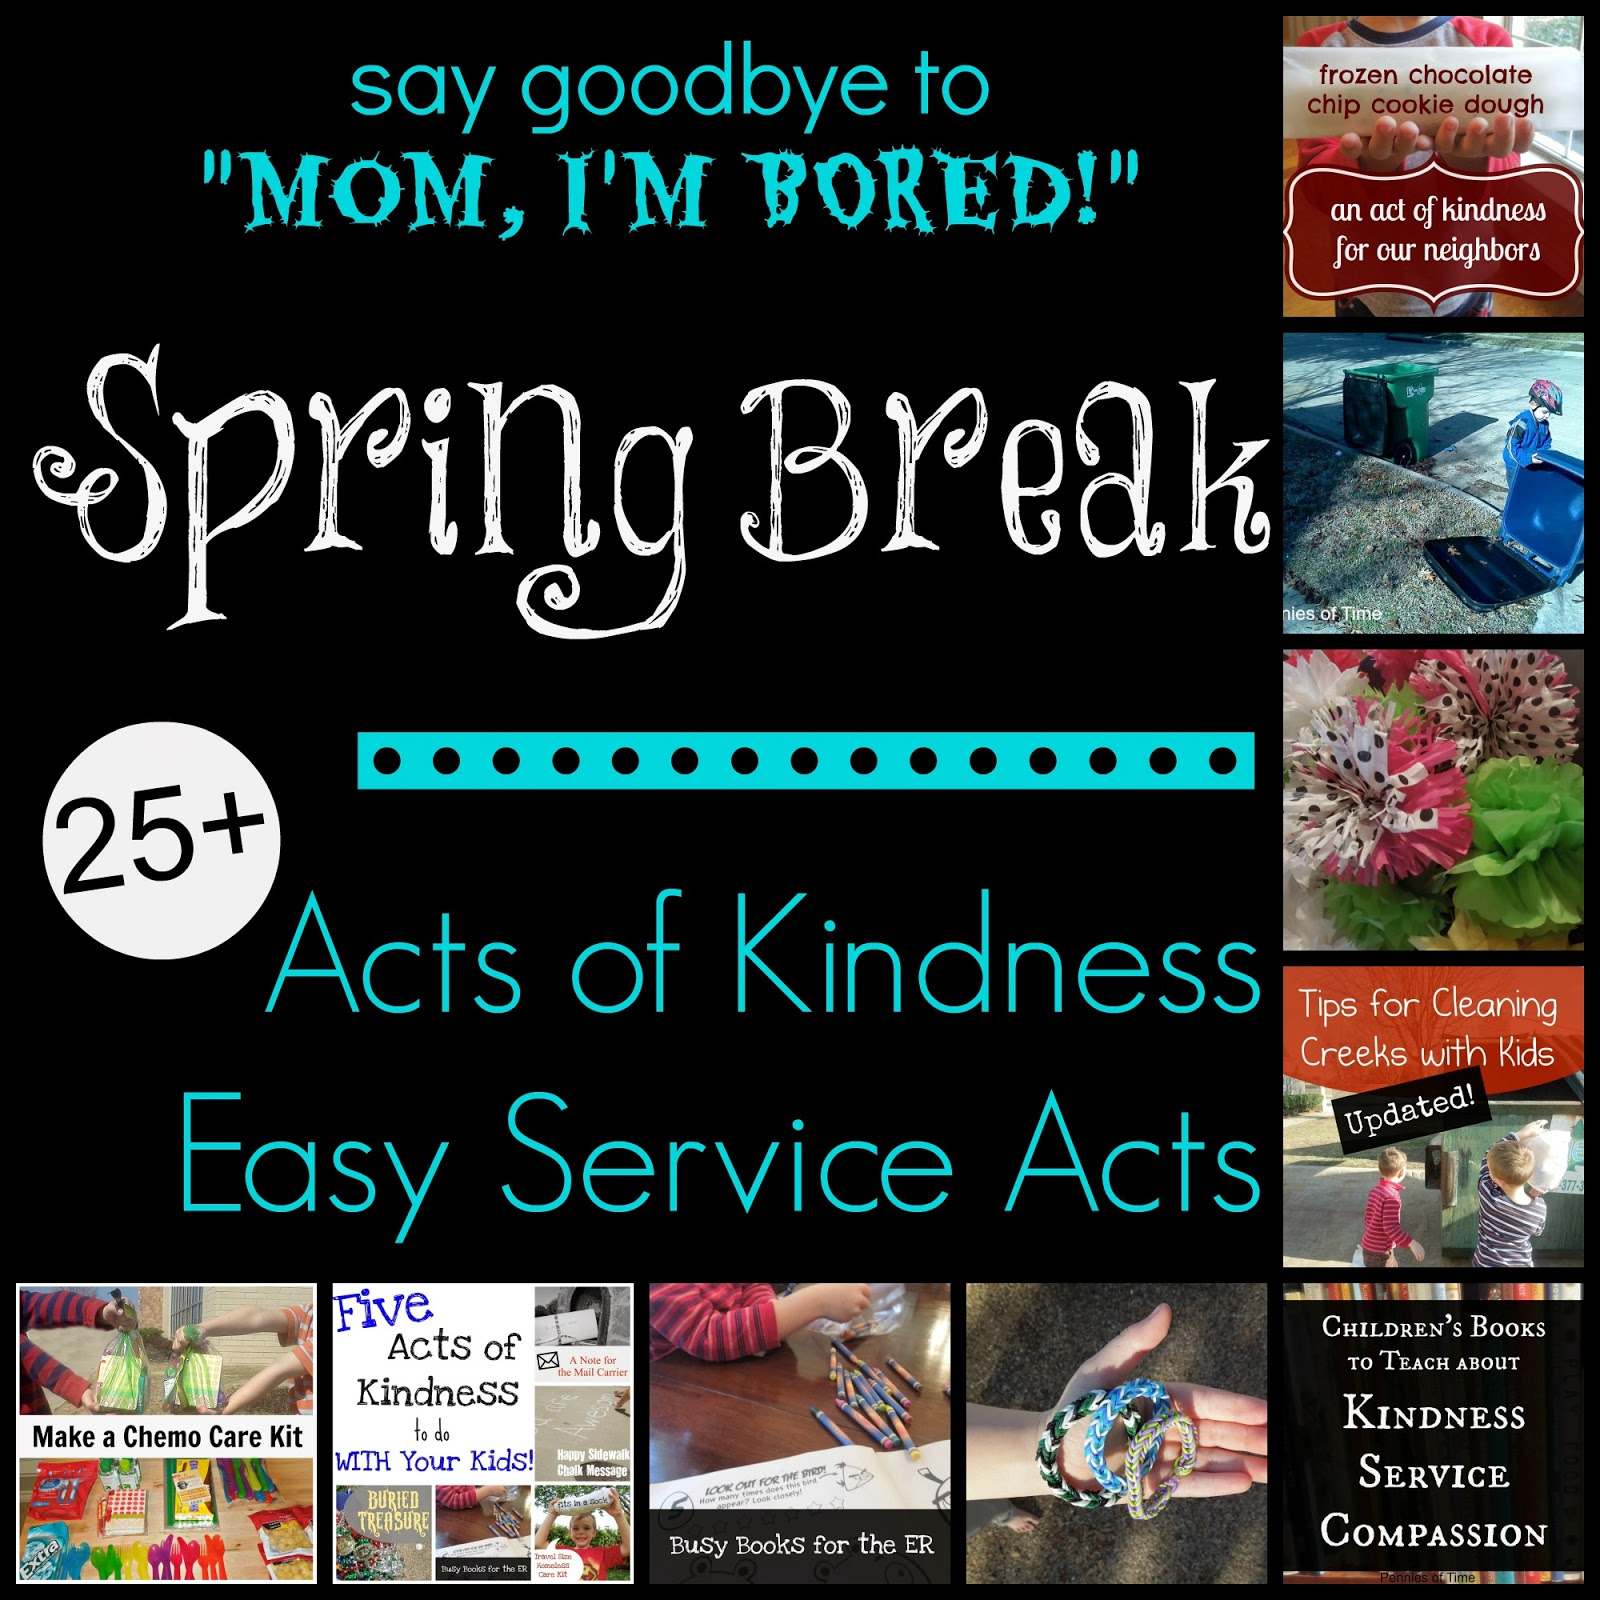 http://penniesoftime.blogspot.com/2014/03/acts-of-kindness-and-simple-service.html